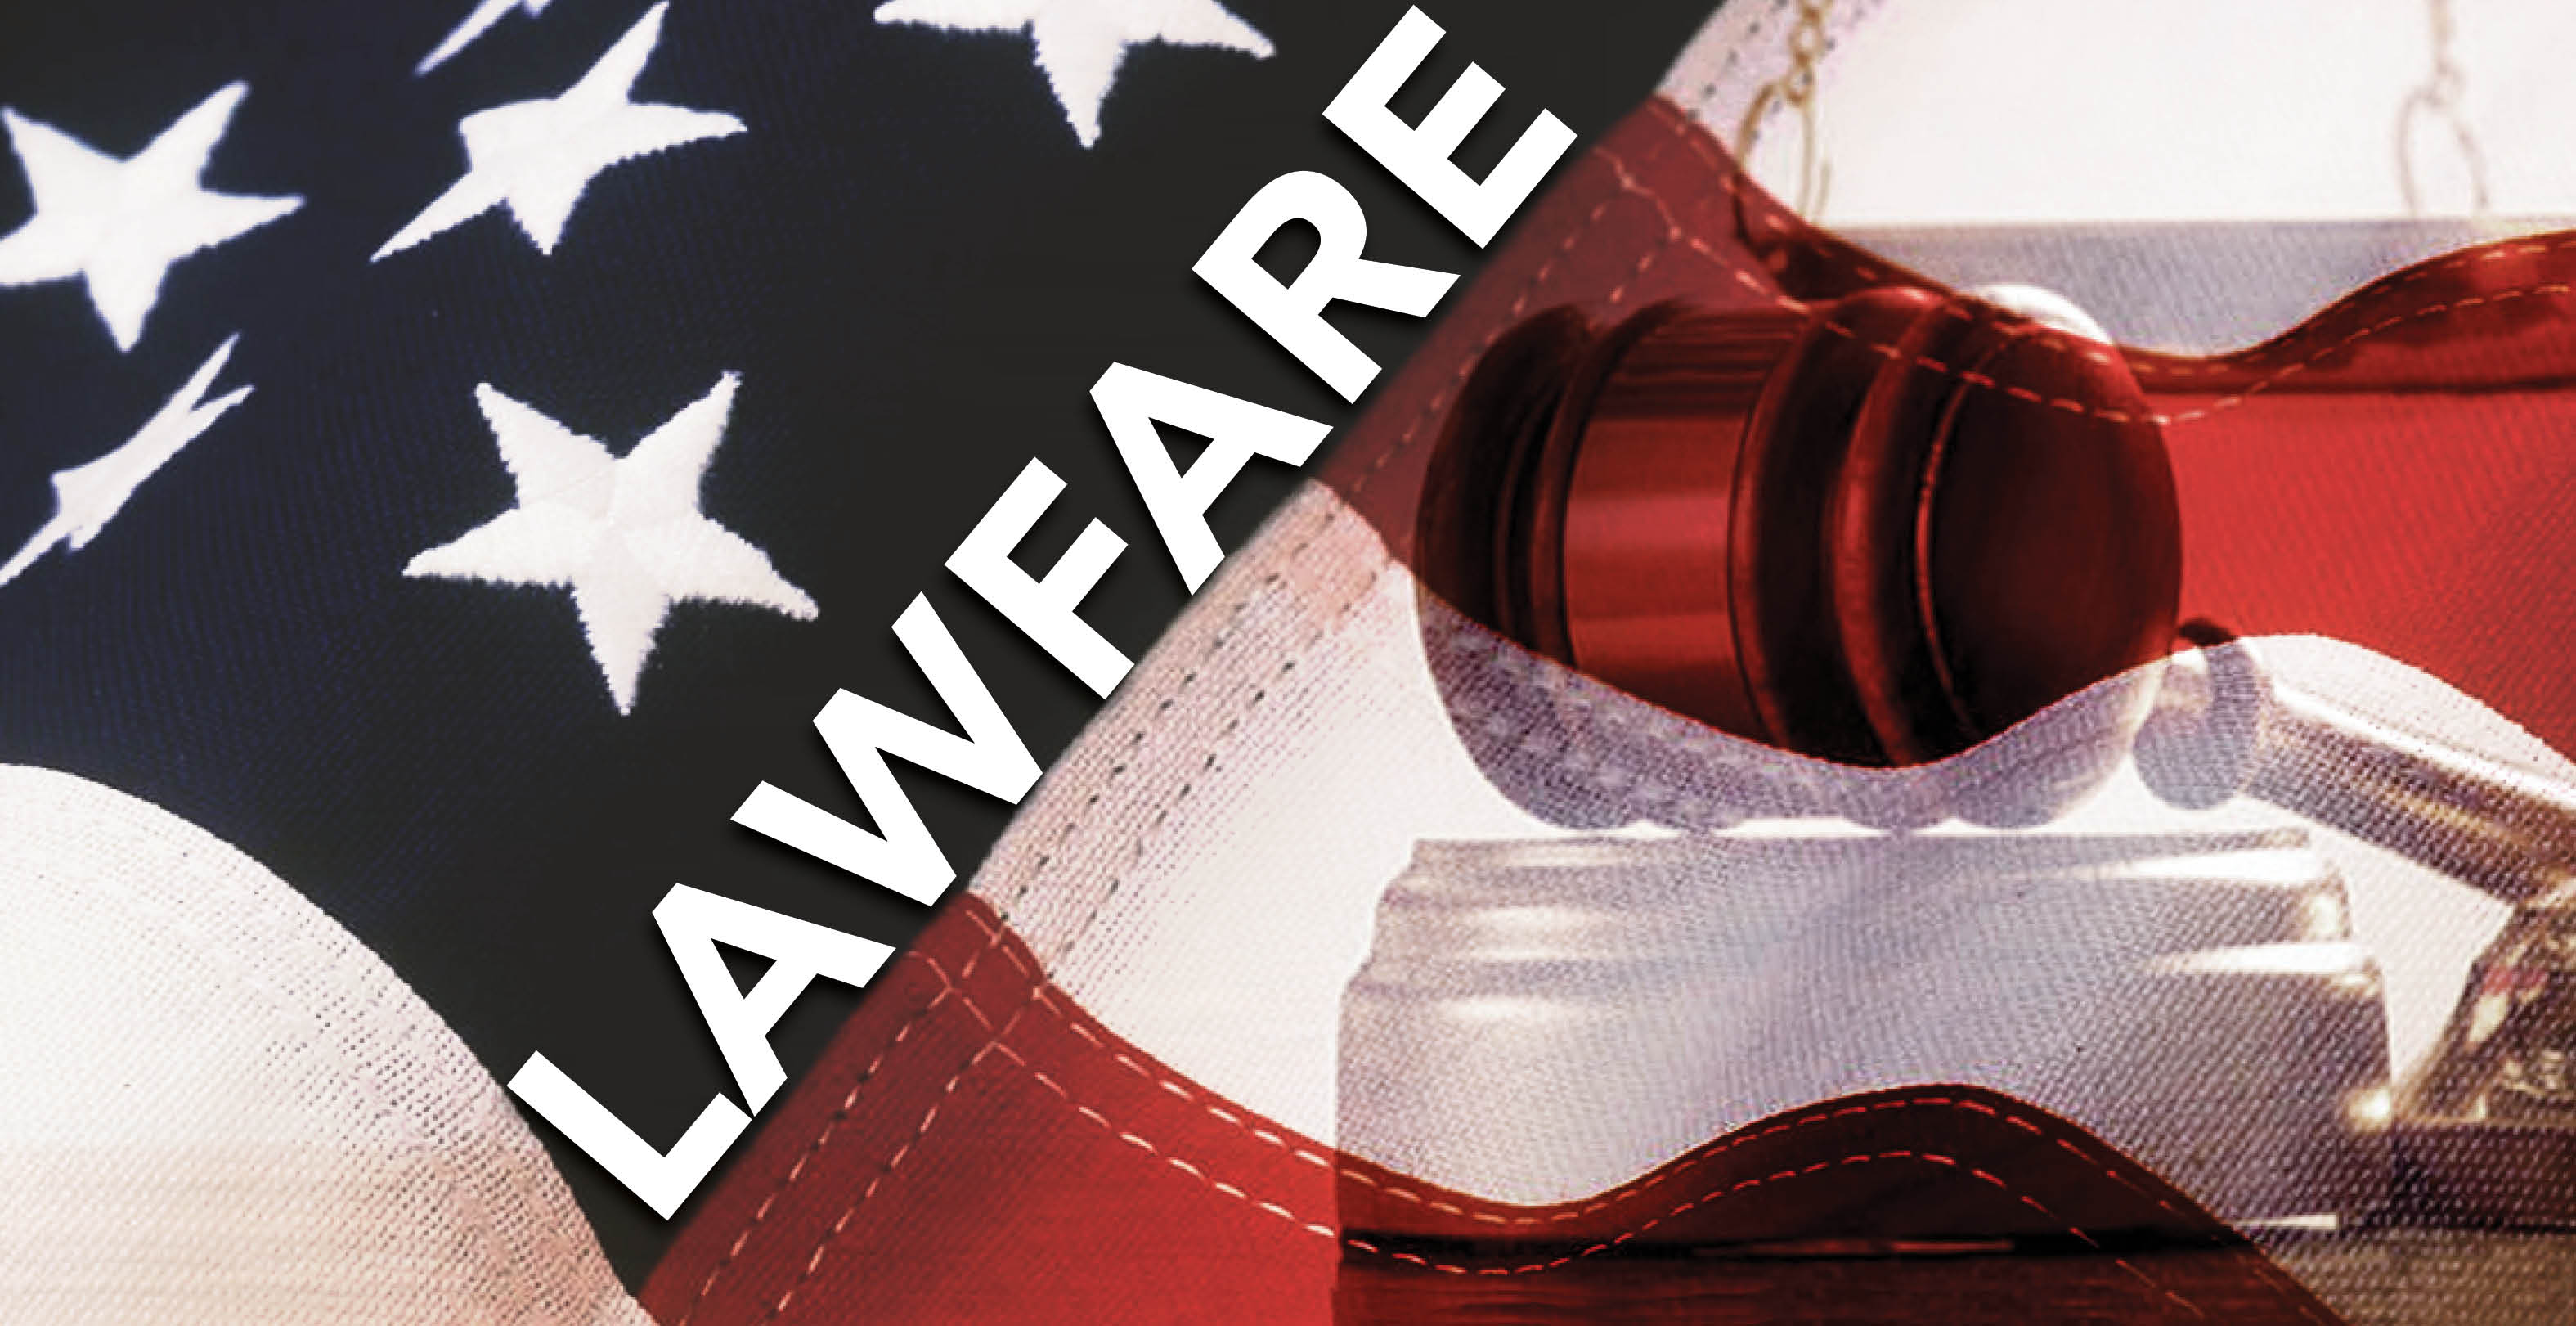 A Case Study in Lawfare